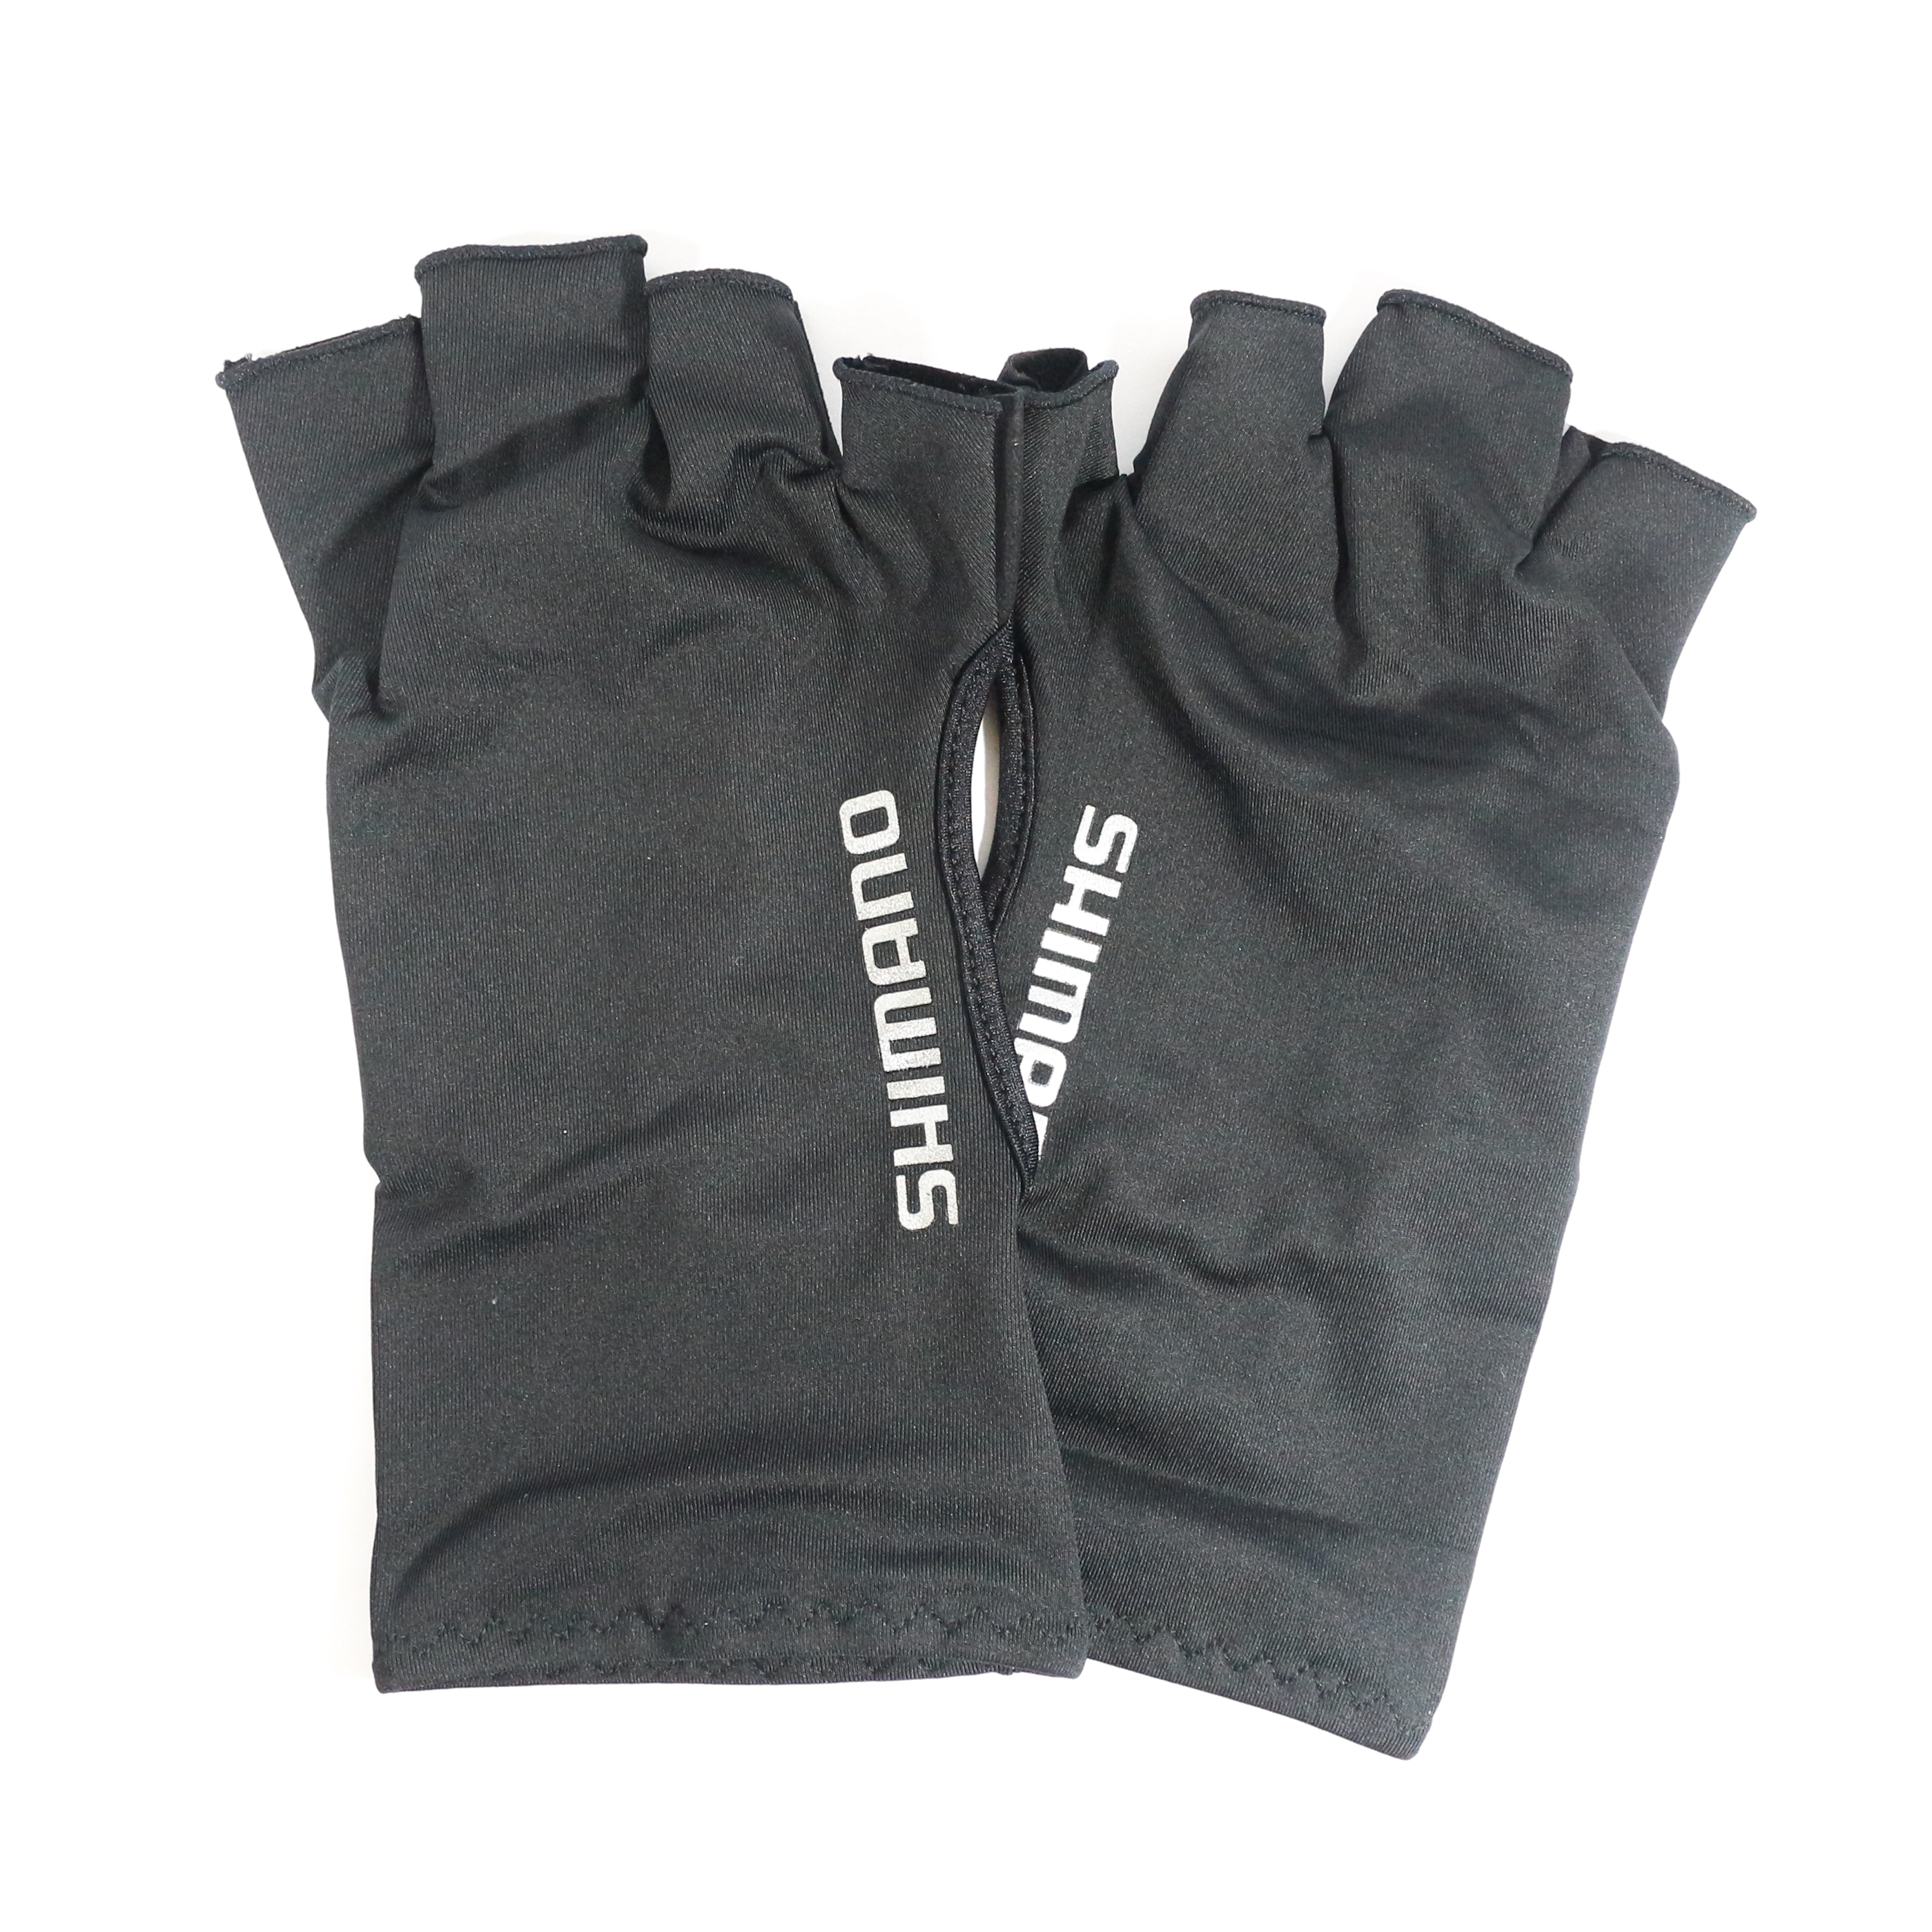 Shimano GL-048Q Gloves UPF 50 Sun Protection 5 Fingerless Bk Size XL 483300